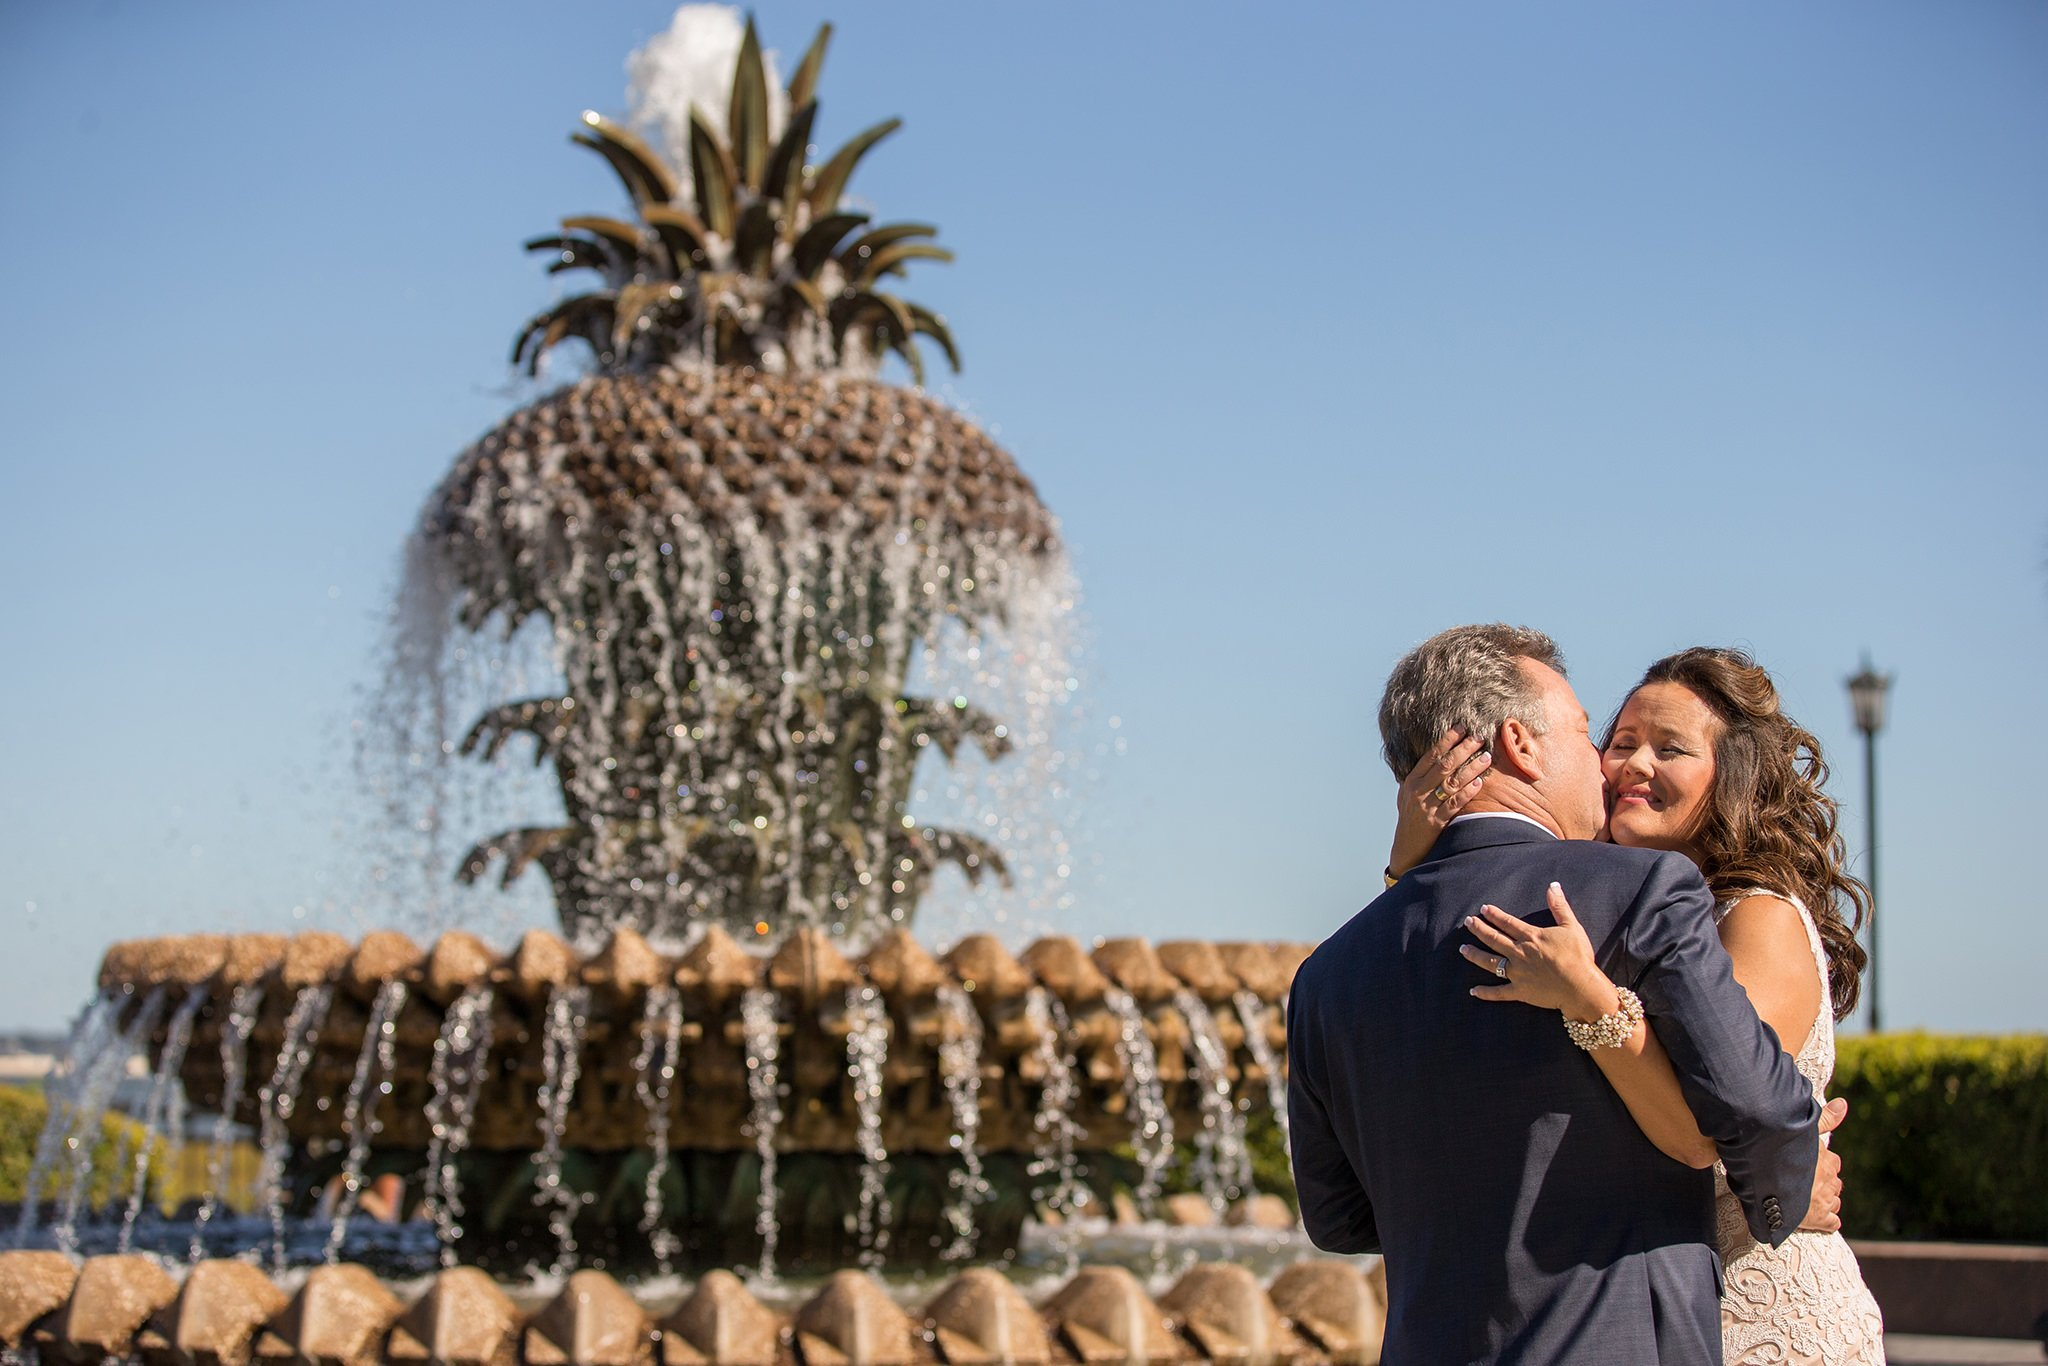 The couple is hugging near the Pineapple fountain